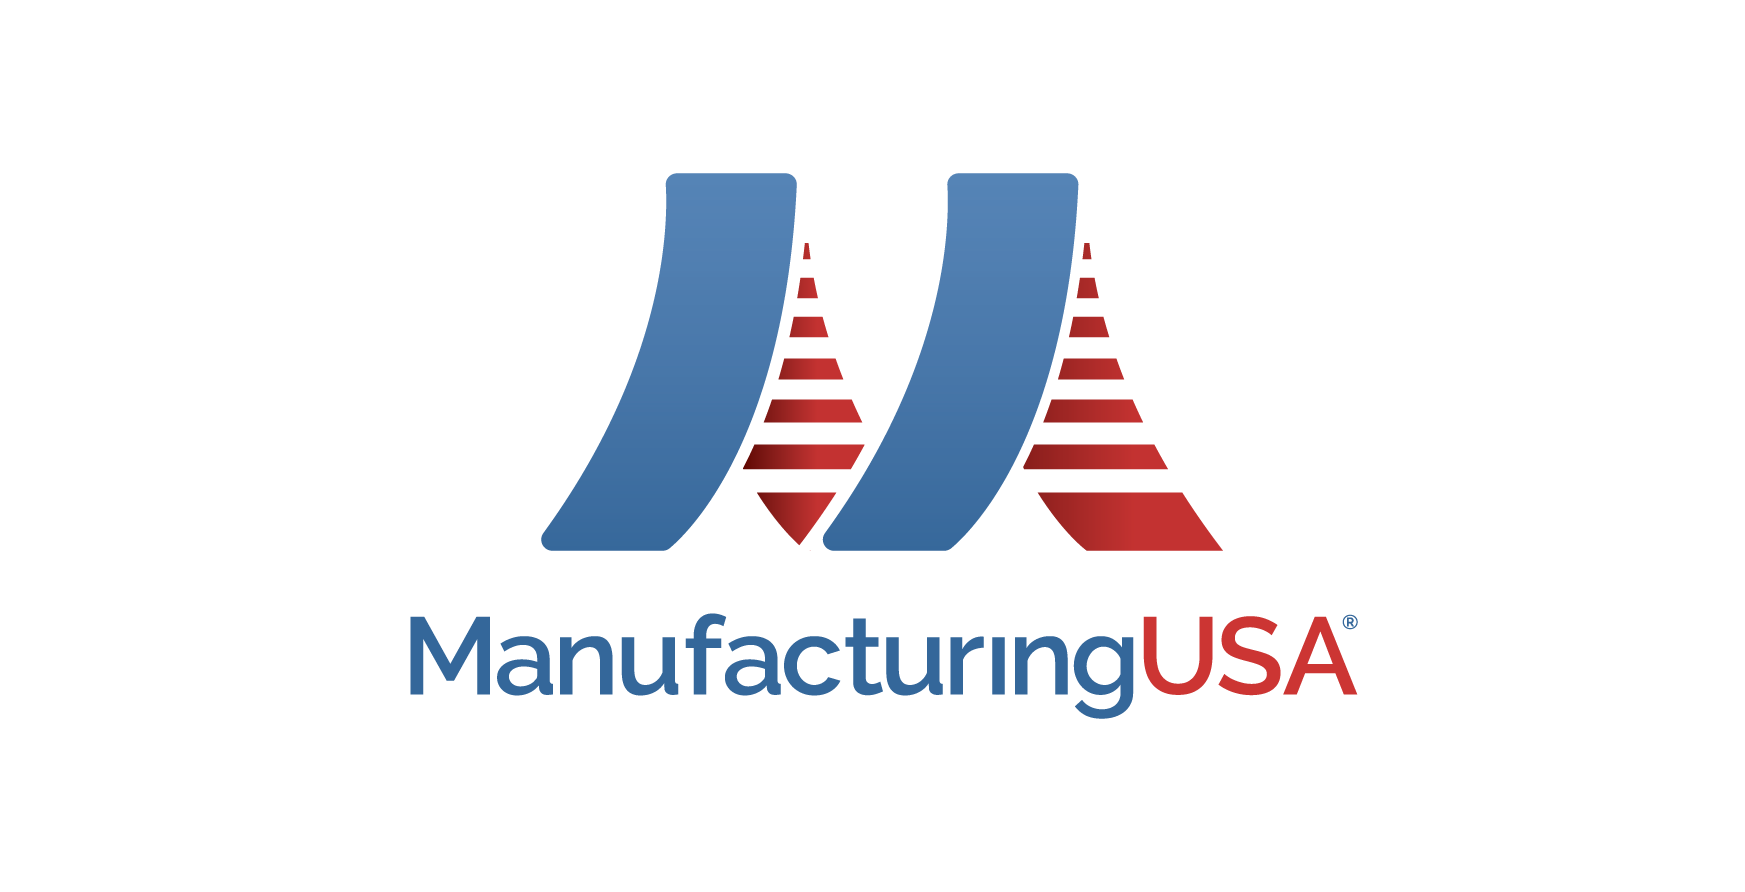 Paid content provided by Manufacturing USA